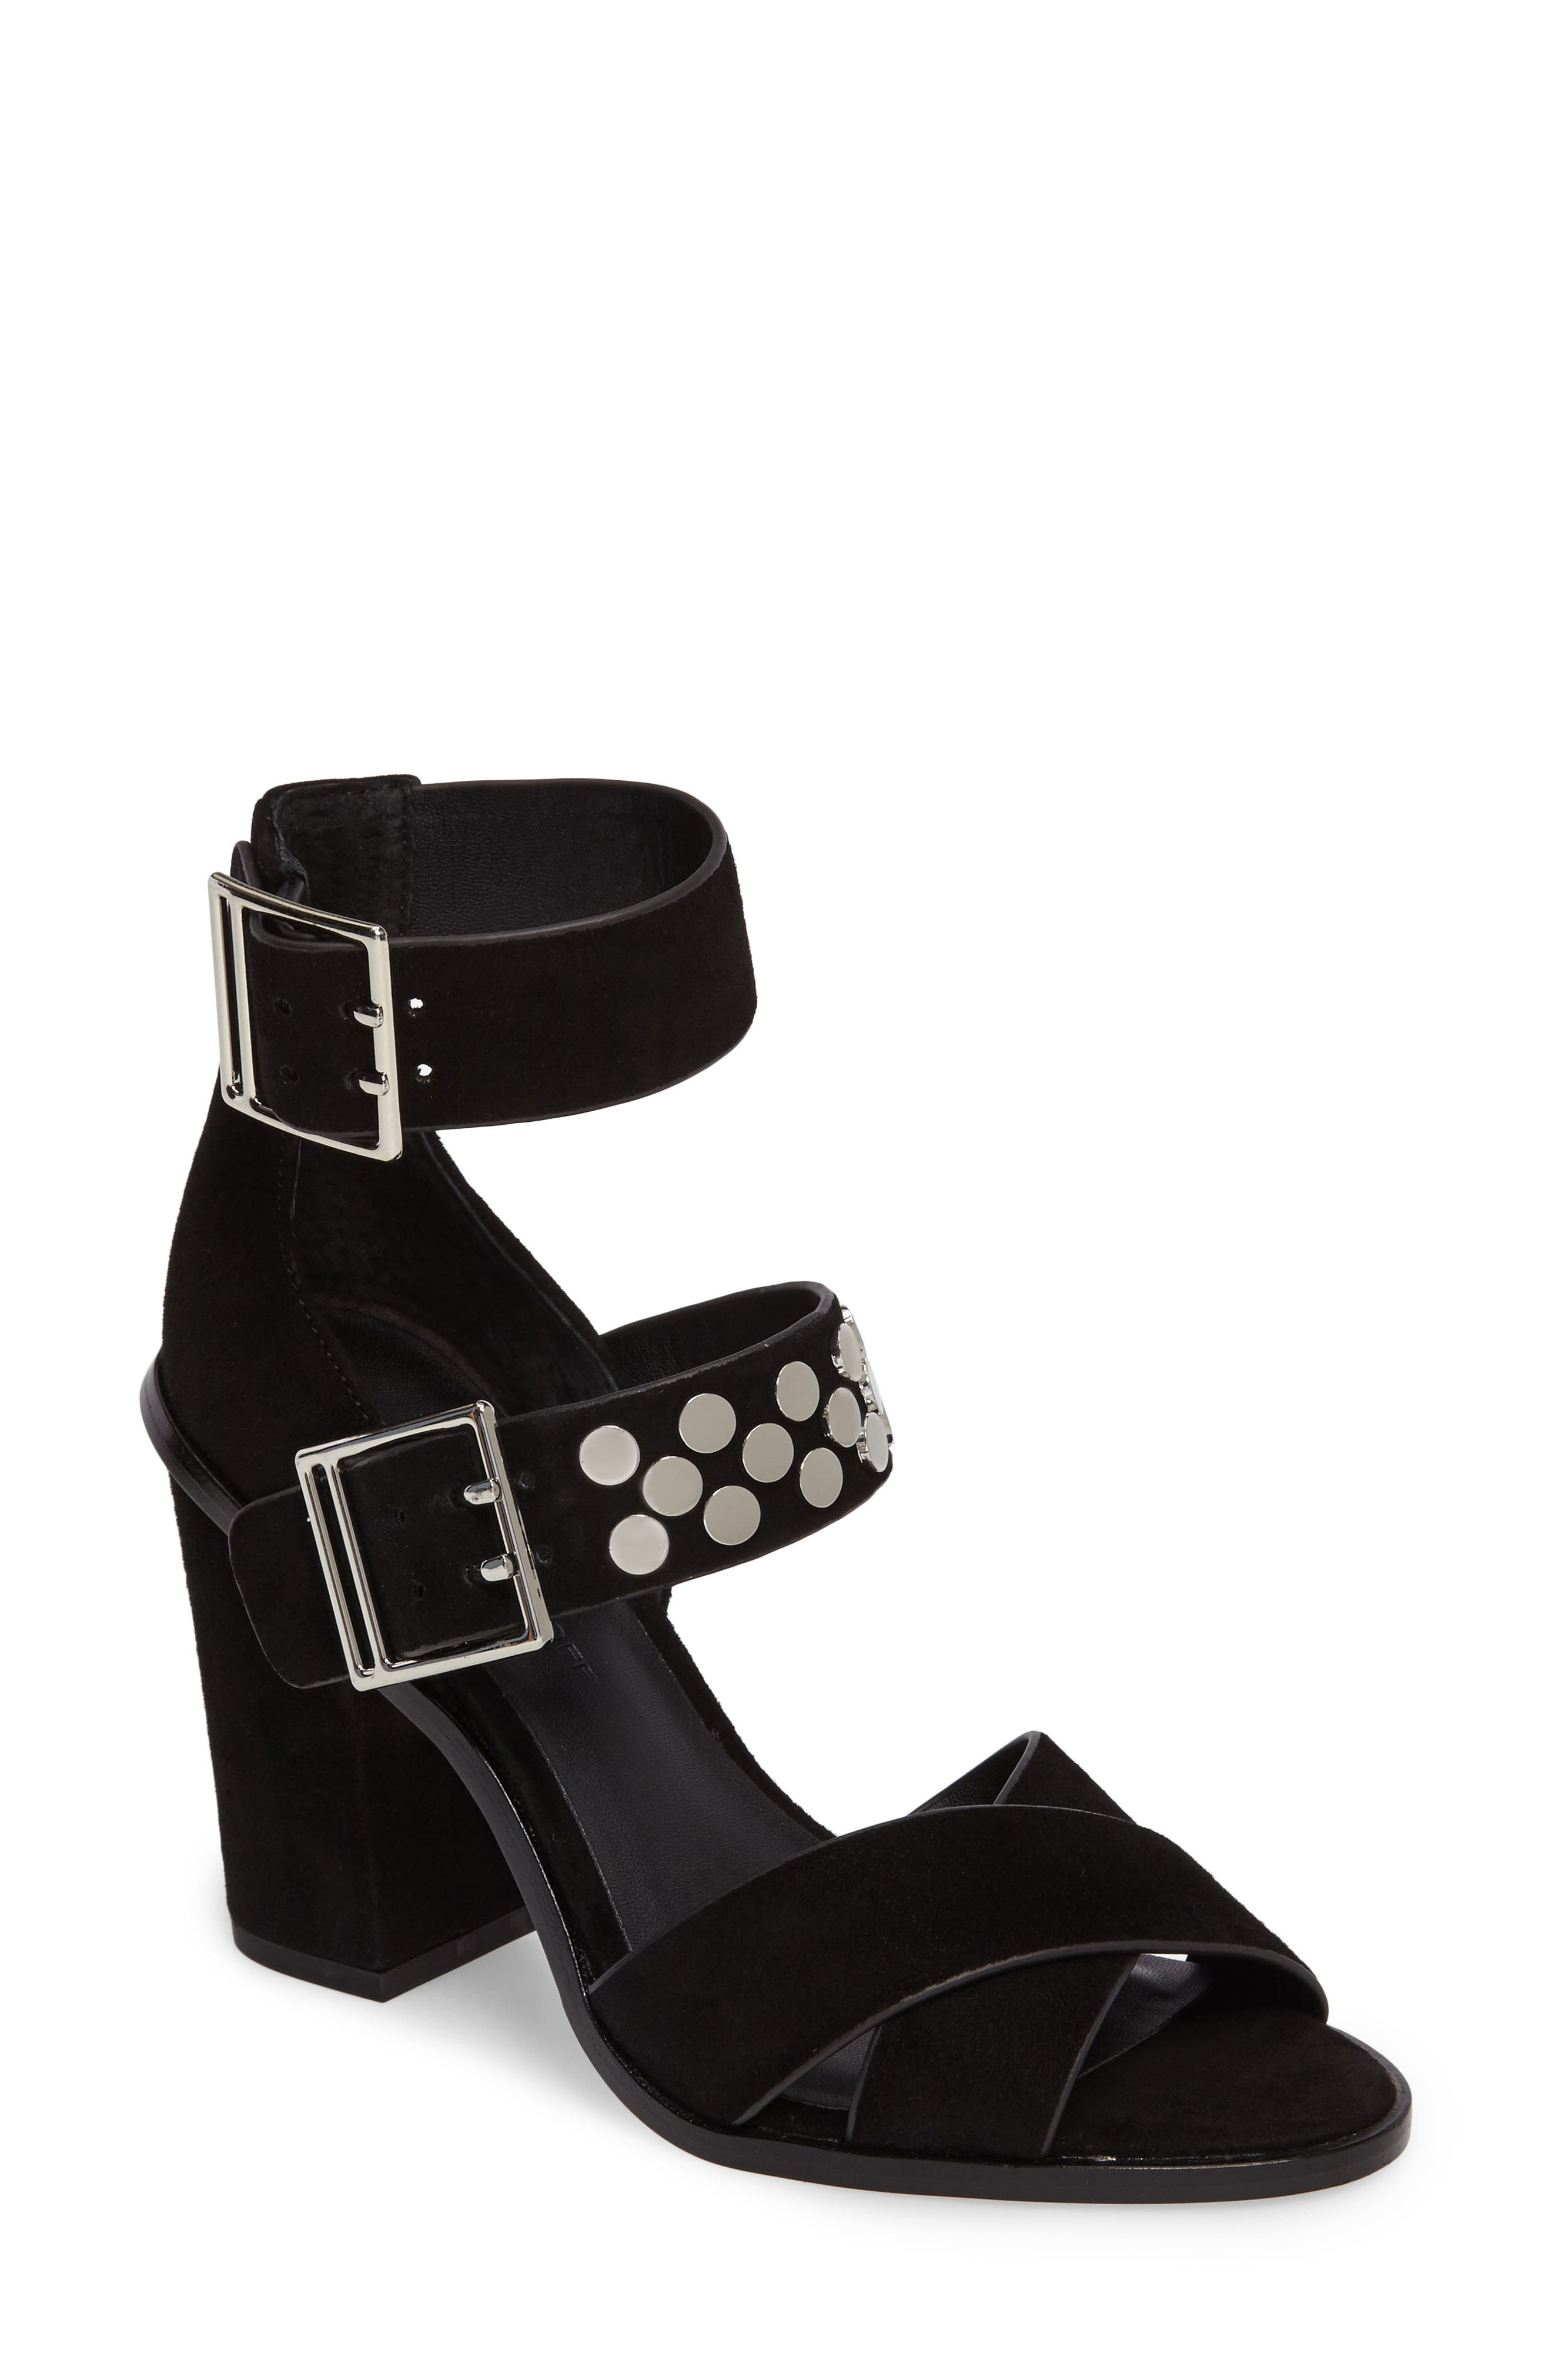 Jennifer Studded Ankle Cuff Sandal,                             Main thumbnail 1, color,                             004